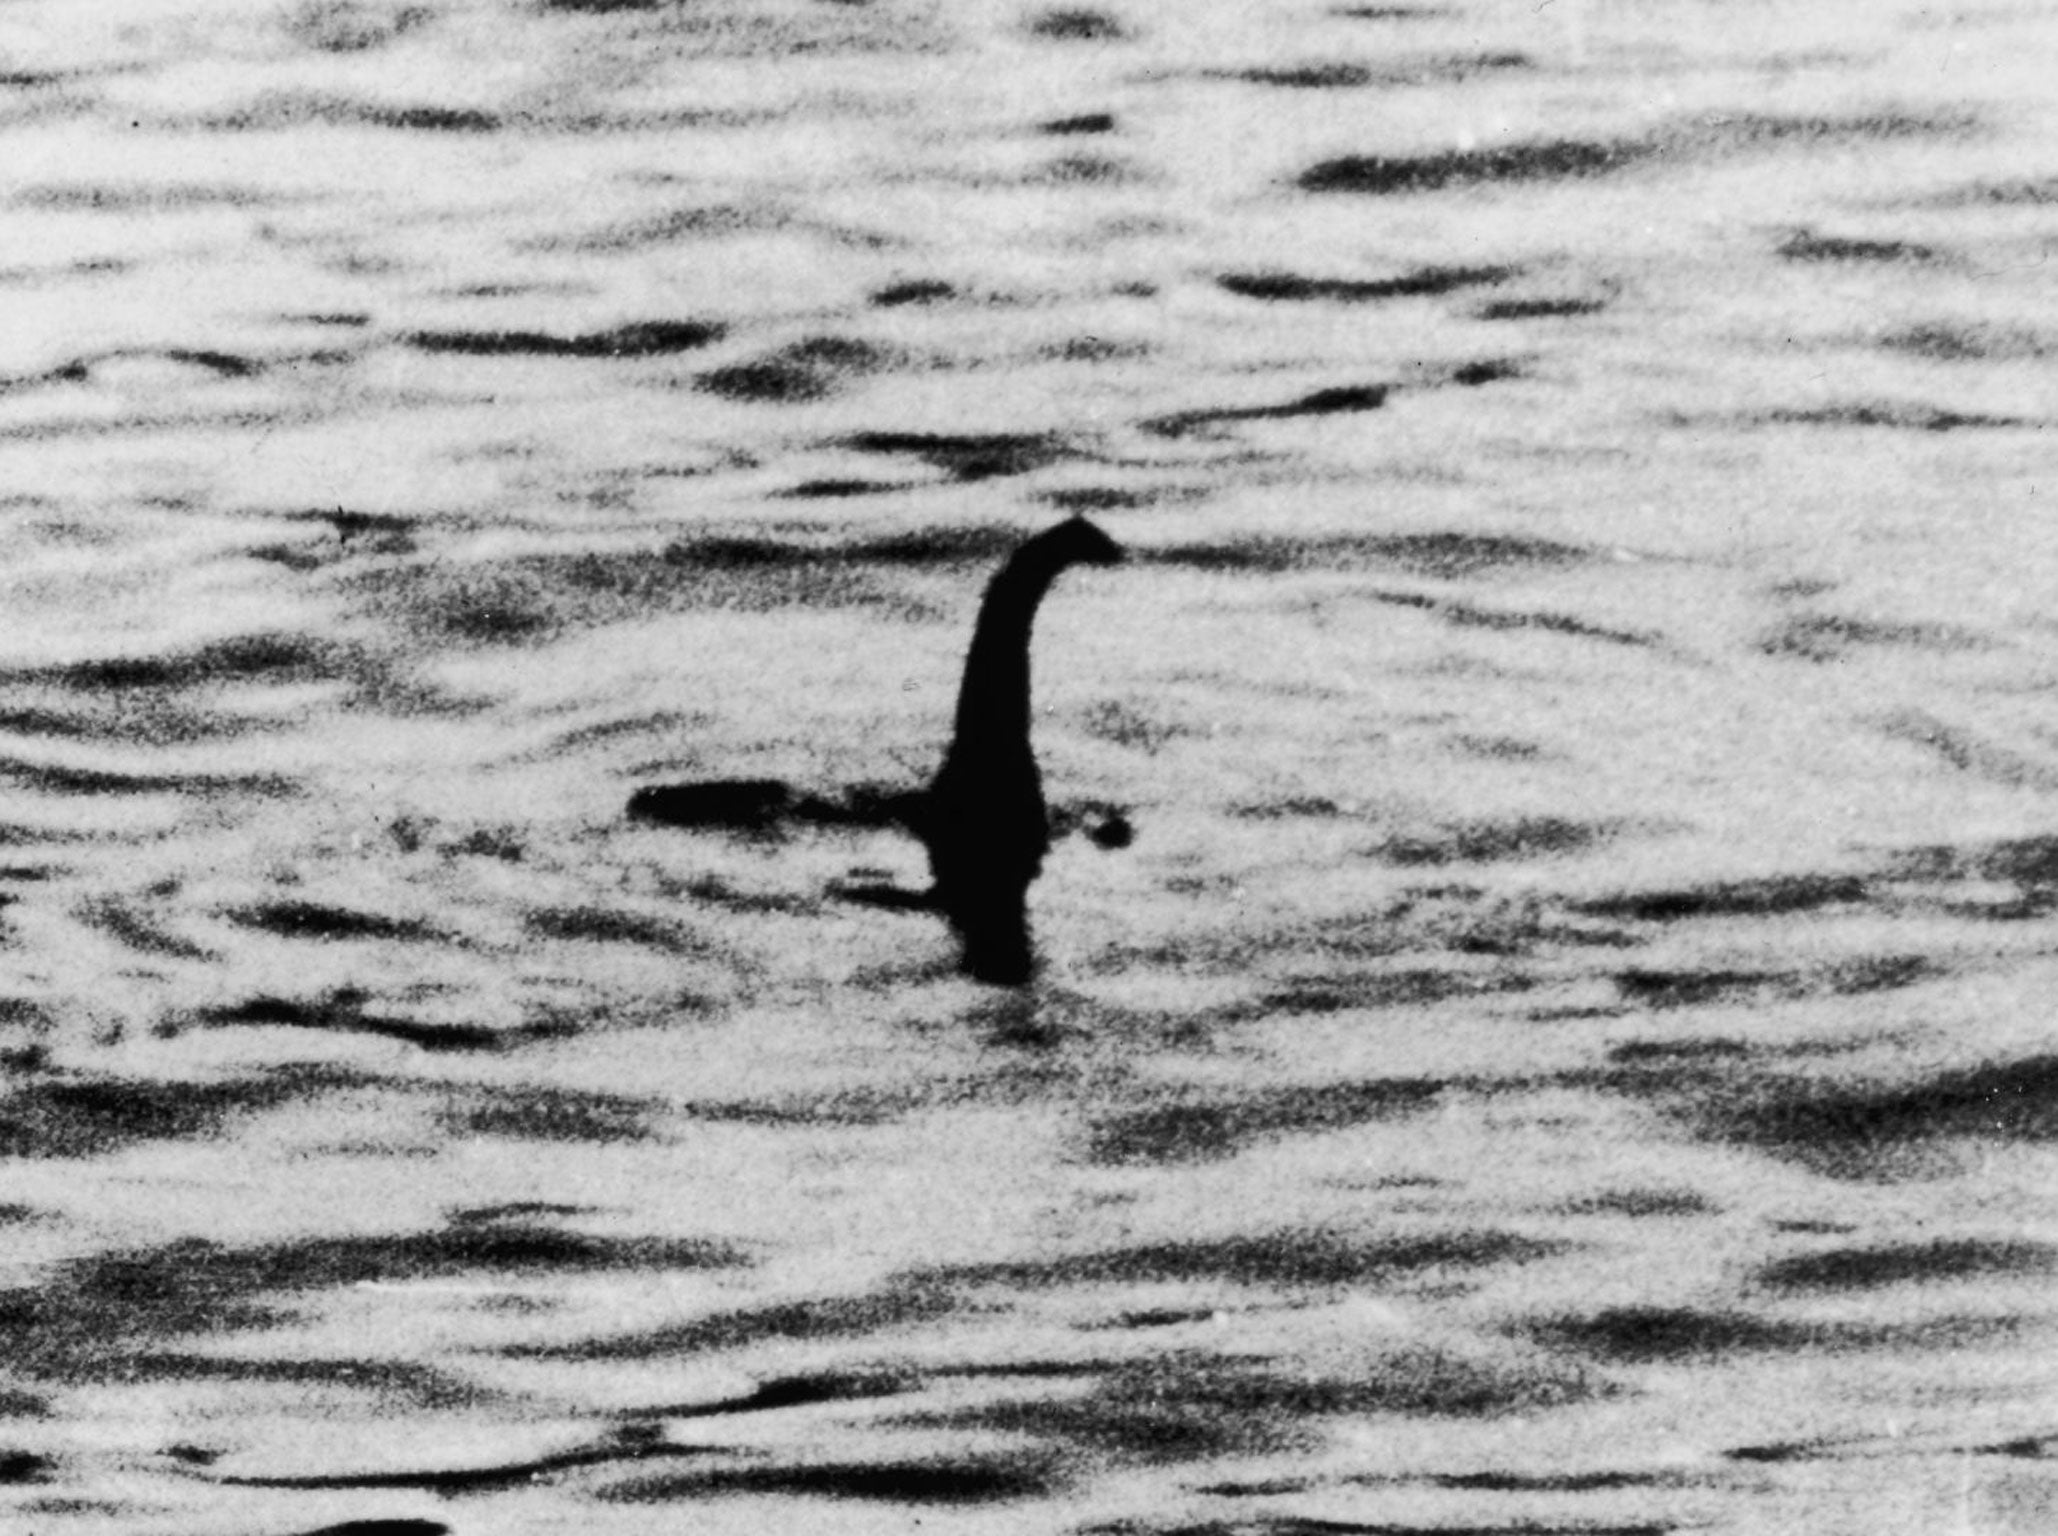 The Loch Ness Monster Is Dead No Confirmed Sightings Since 1925